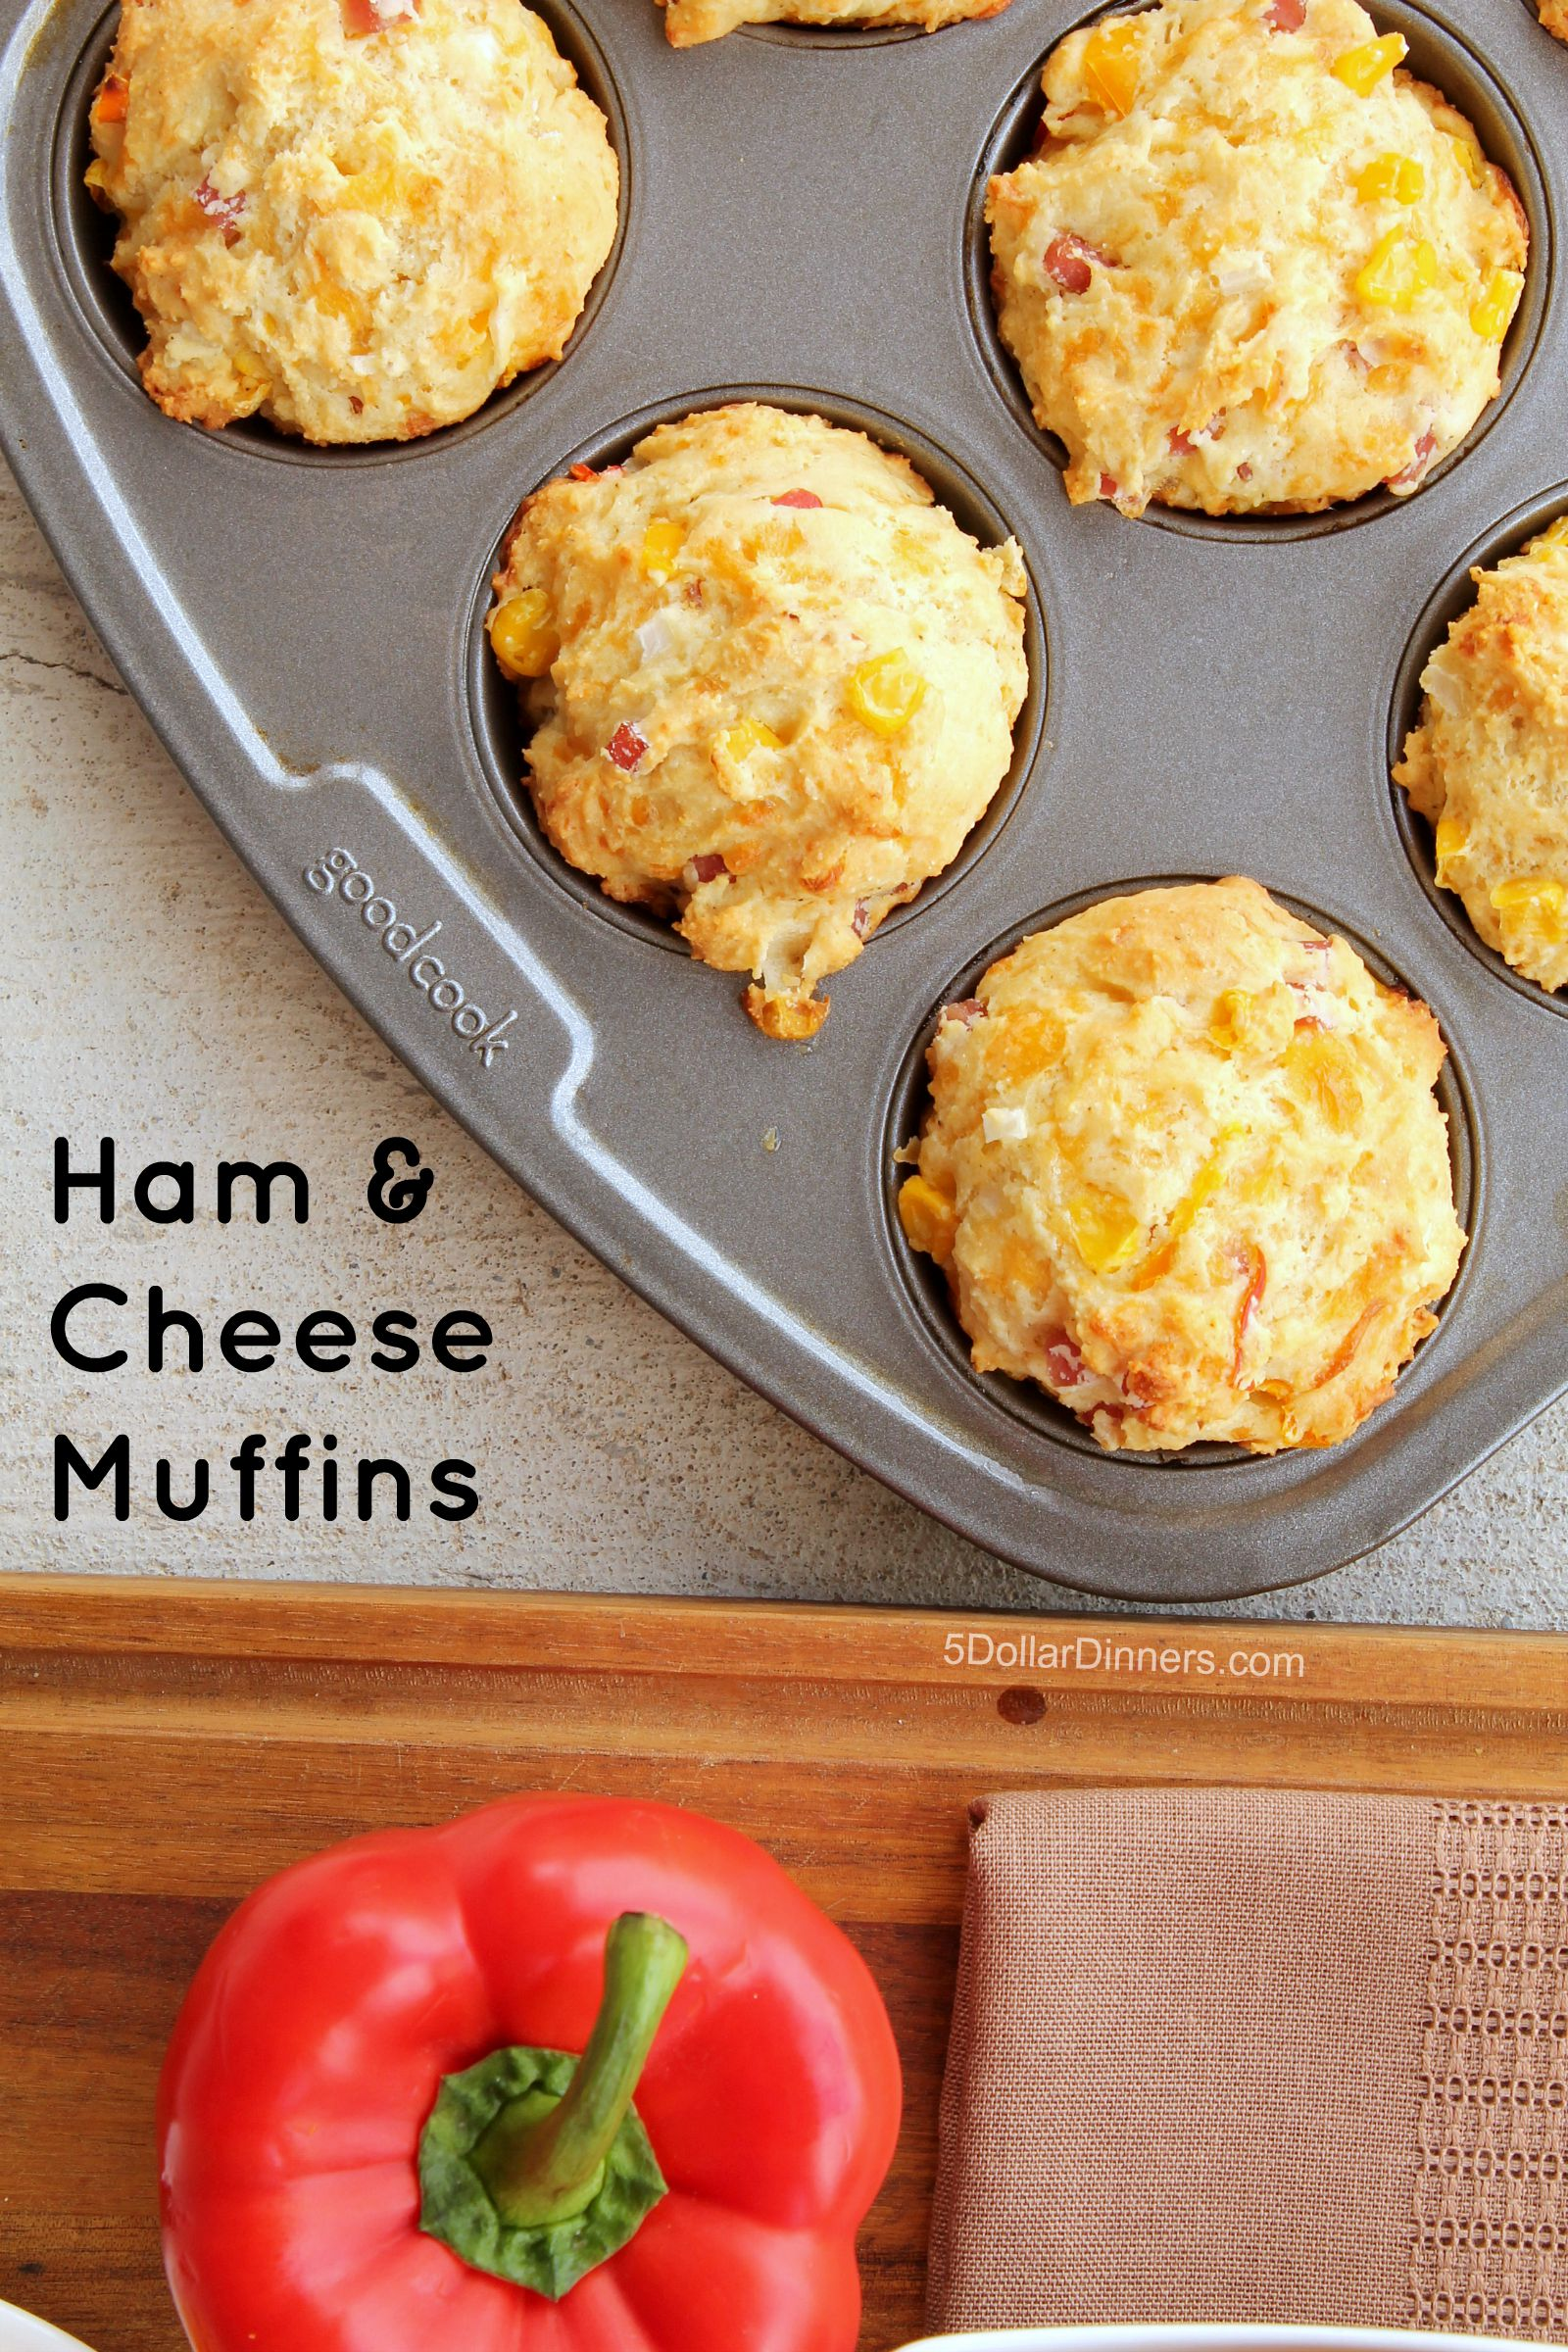 Ham and Cheese Muffins with Smithfield Anytime Favorites Diced Ham Recipe